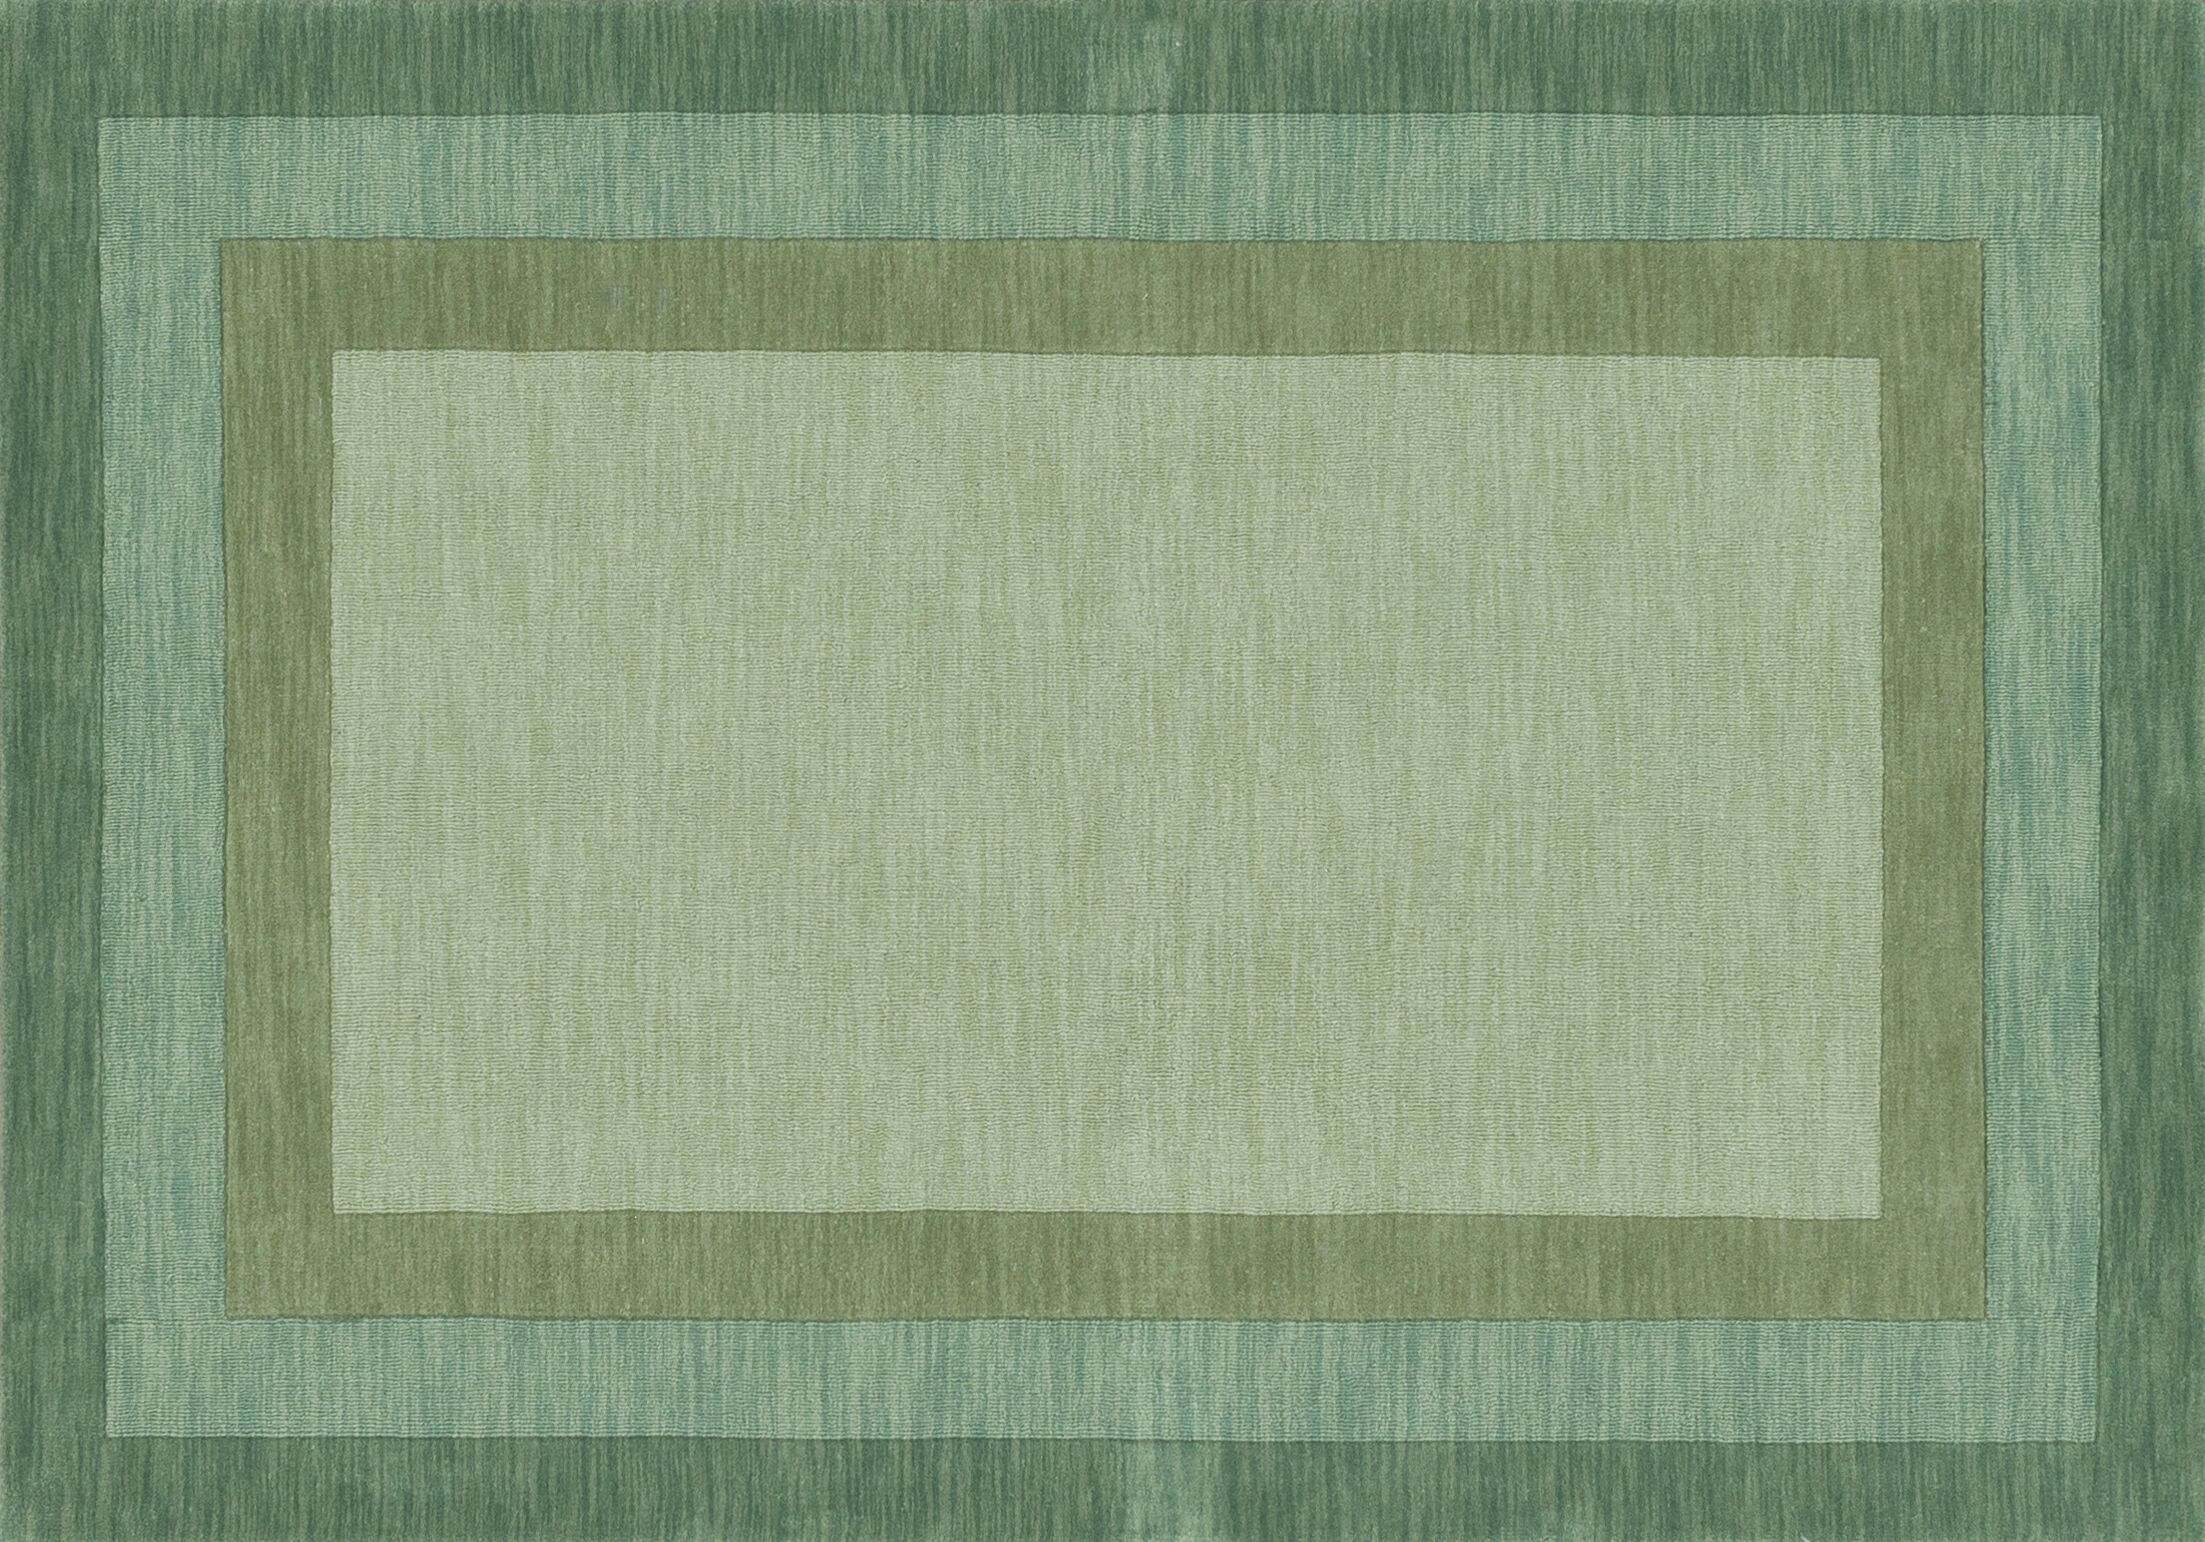 Keifer Hand-Tufted Green Area Rug Rug Size: Rectangle 3'6